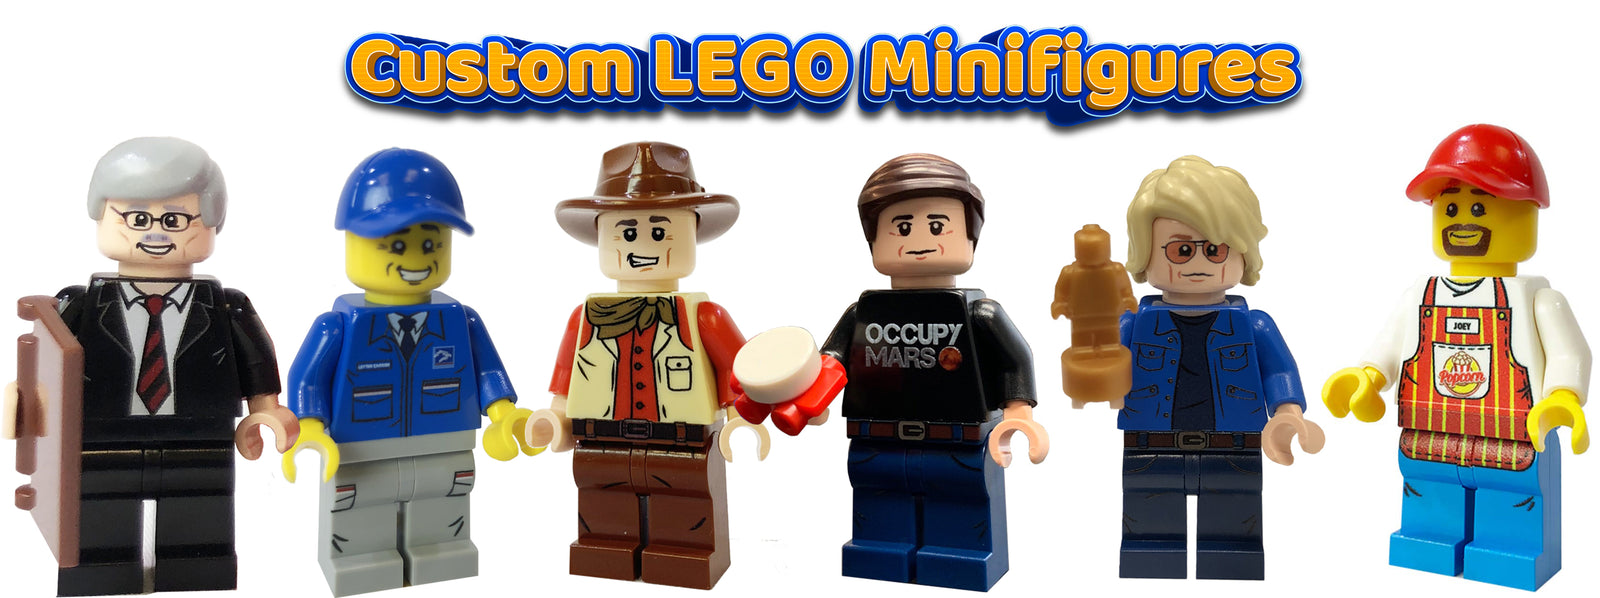 Custom LEGO Minifigures - Corporate Gifts